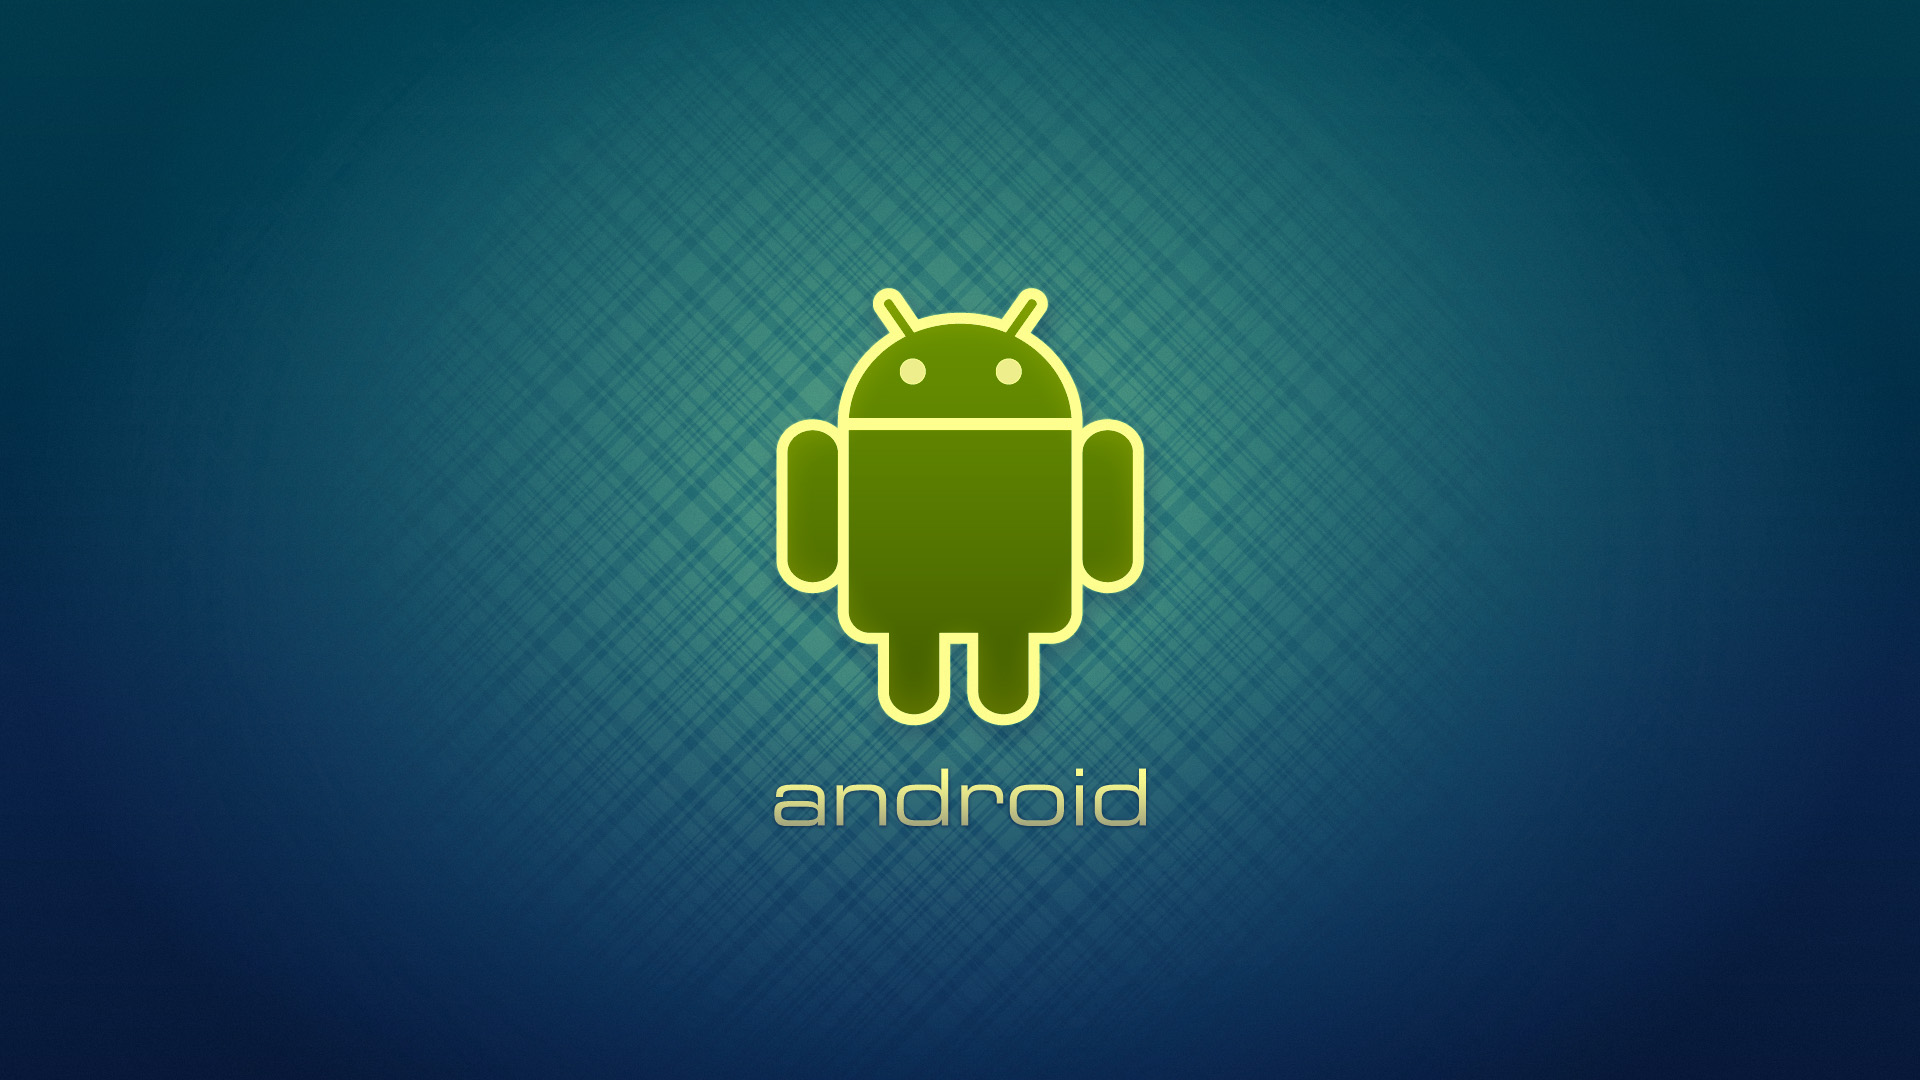 android wallpaper with blue background 1920x1080